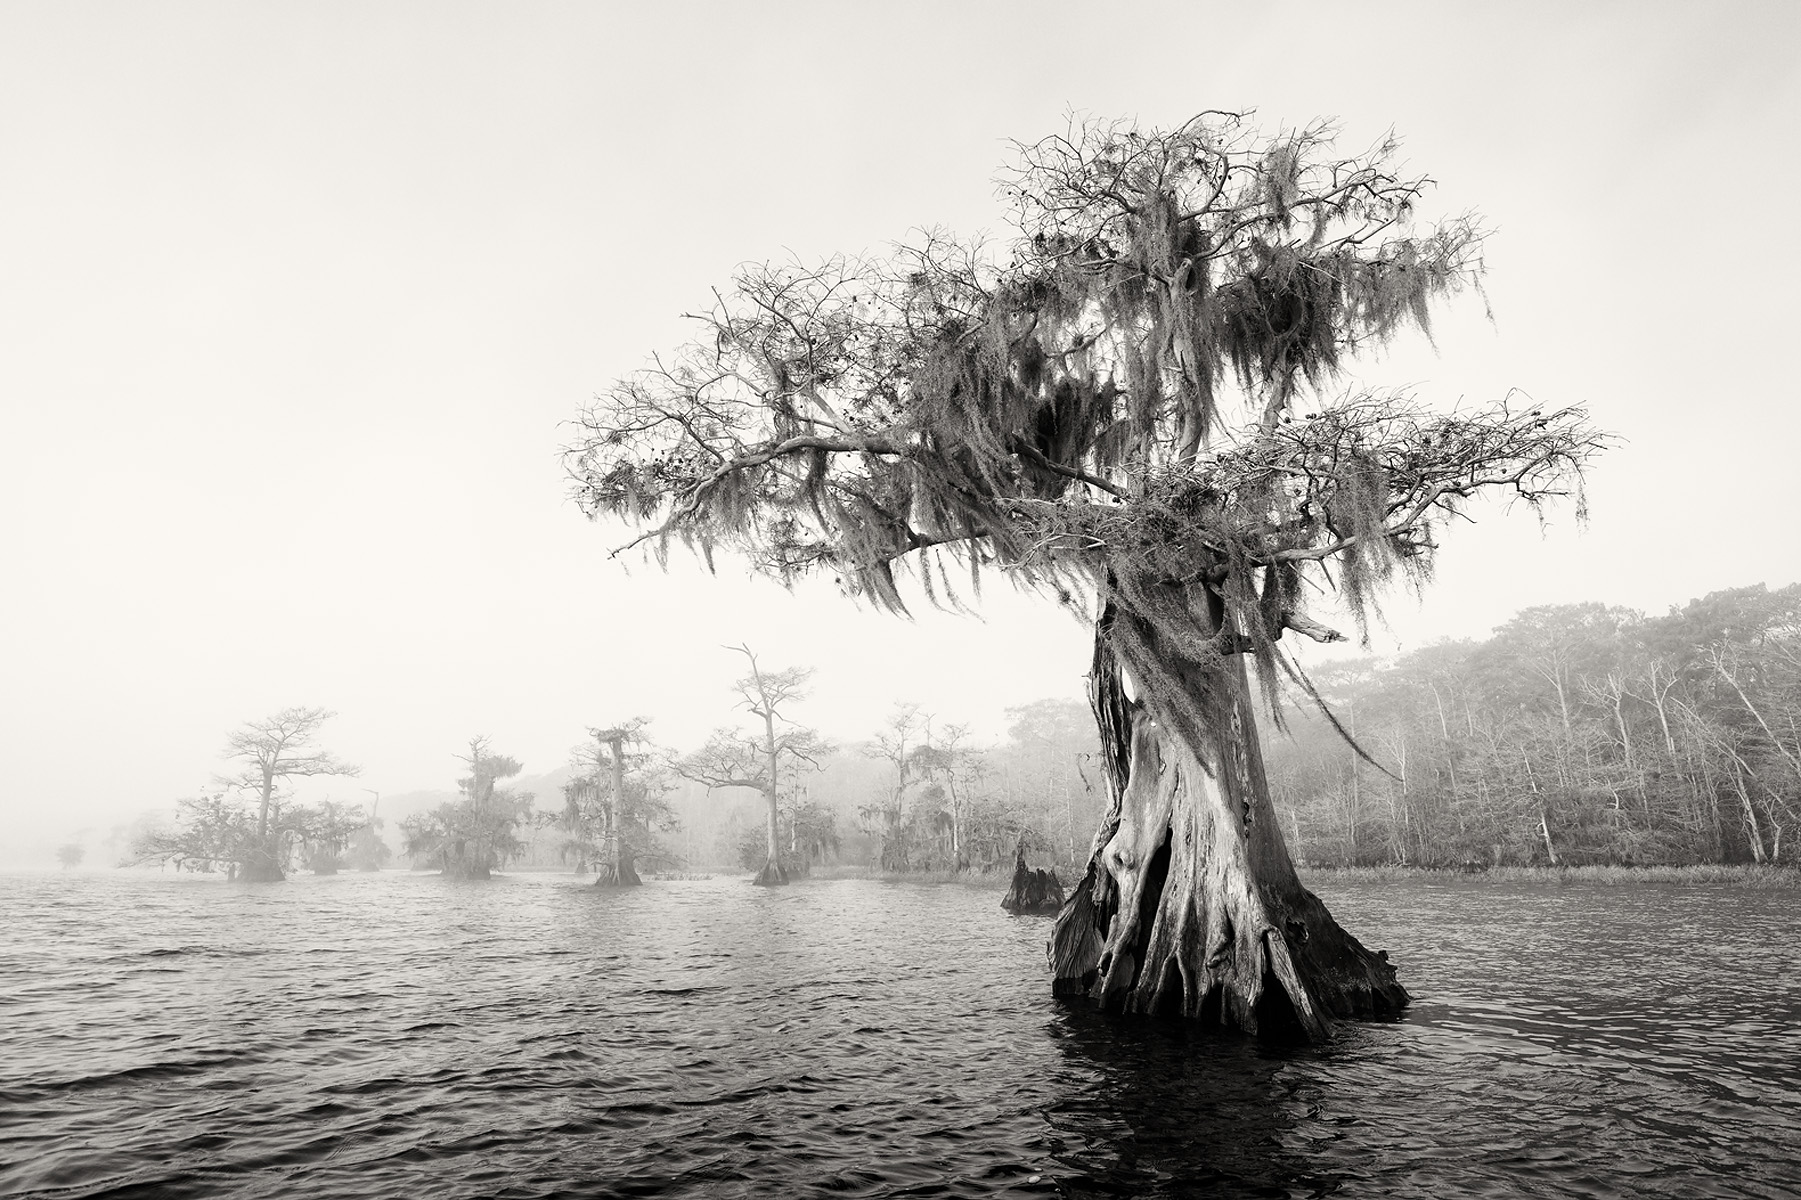 Cypress tree in the lake_B&W_S6A0160-Lake Blue Cypress, FL, USA.jpg